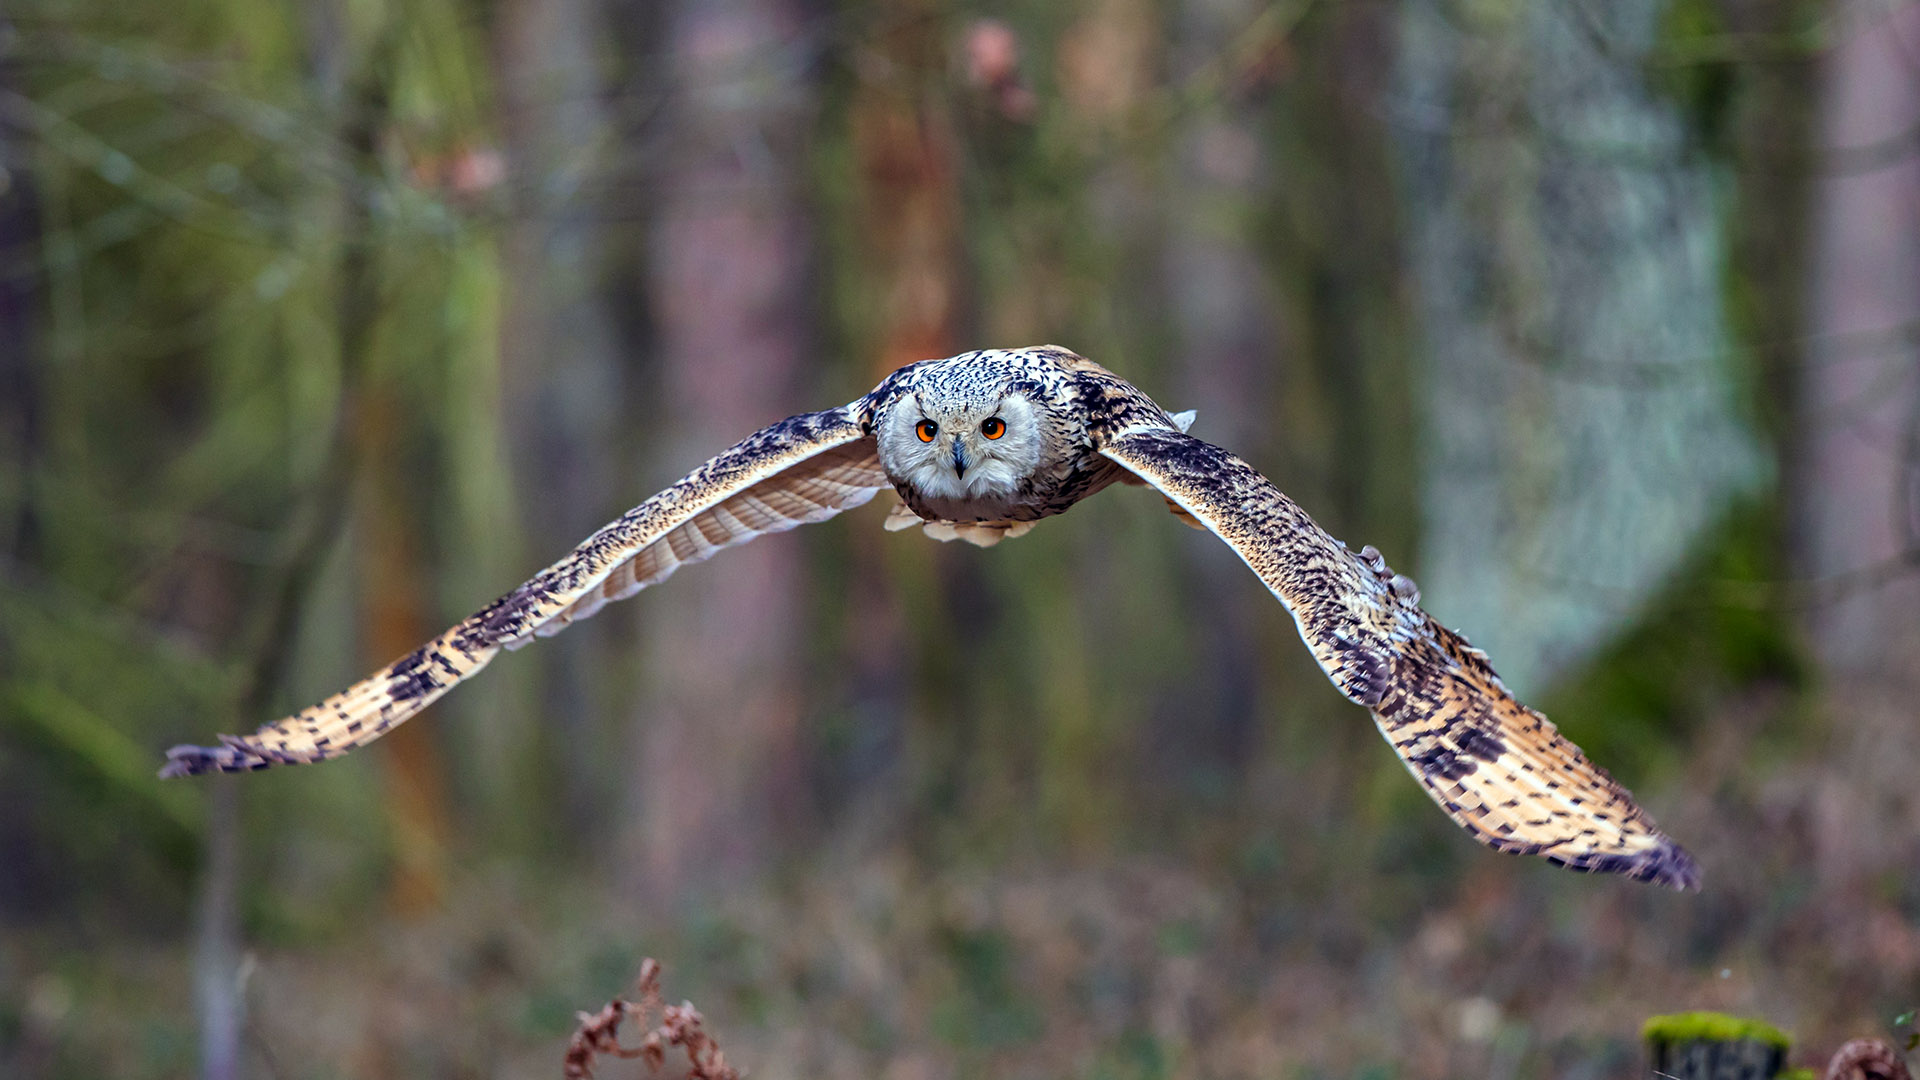 A brown, tan and white western Siberian eagle-owl with orange eyes flying towards the camera.